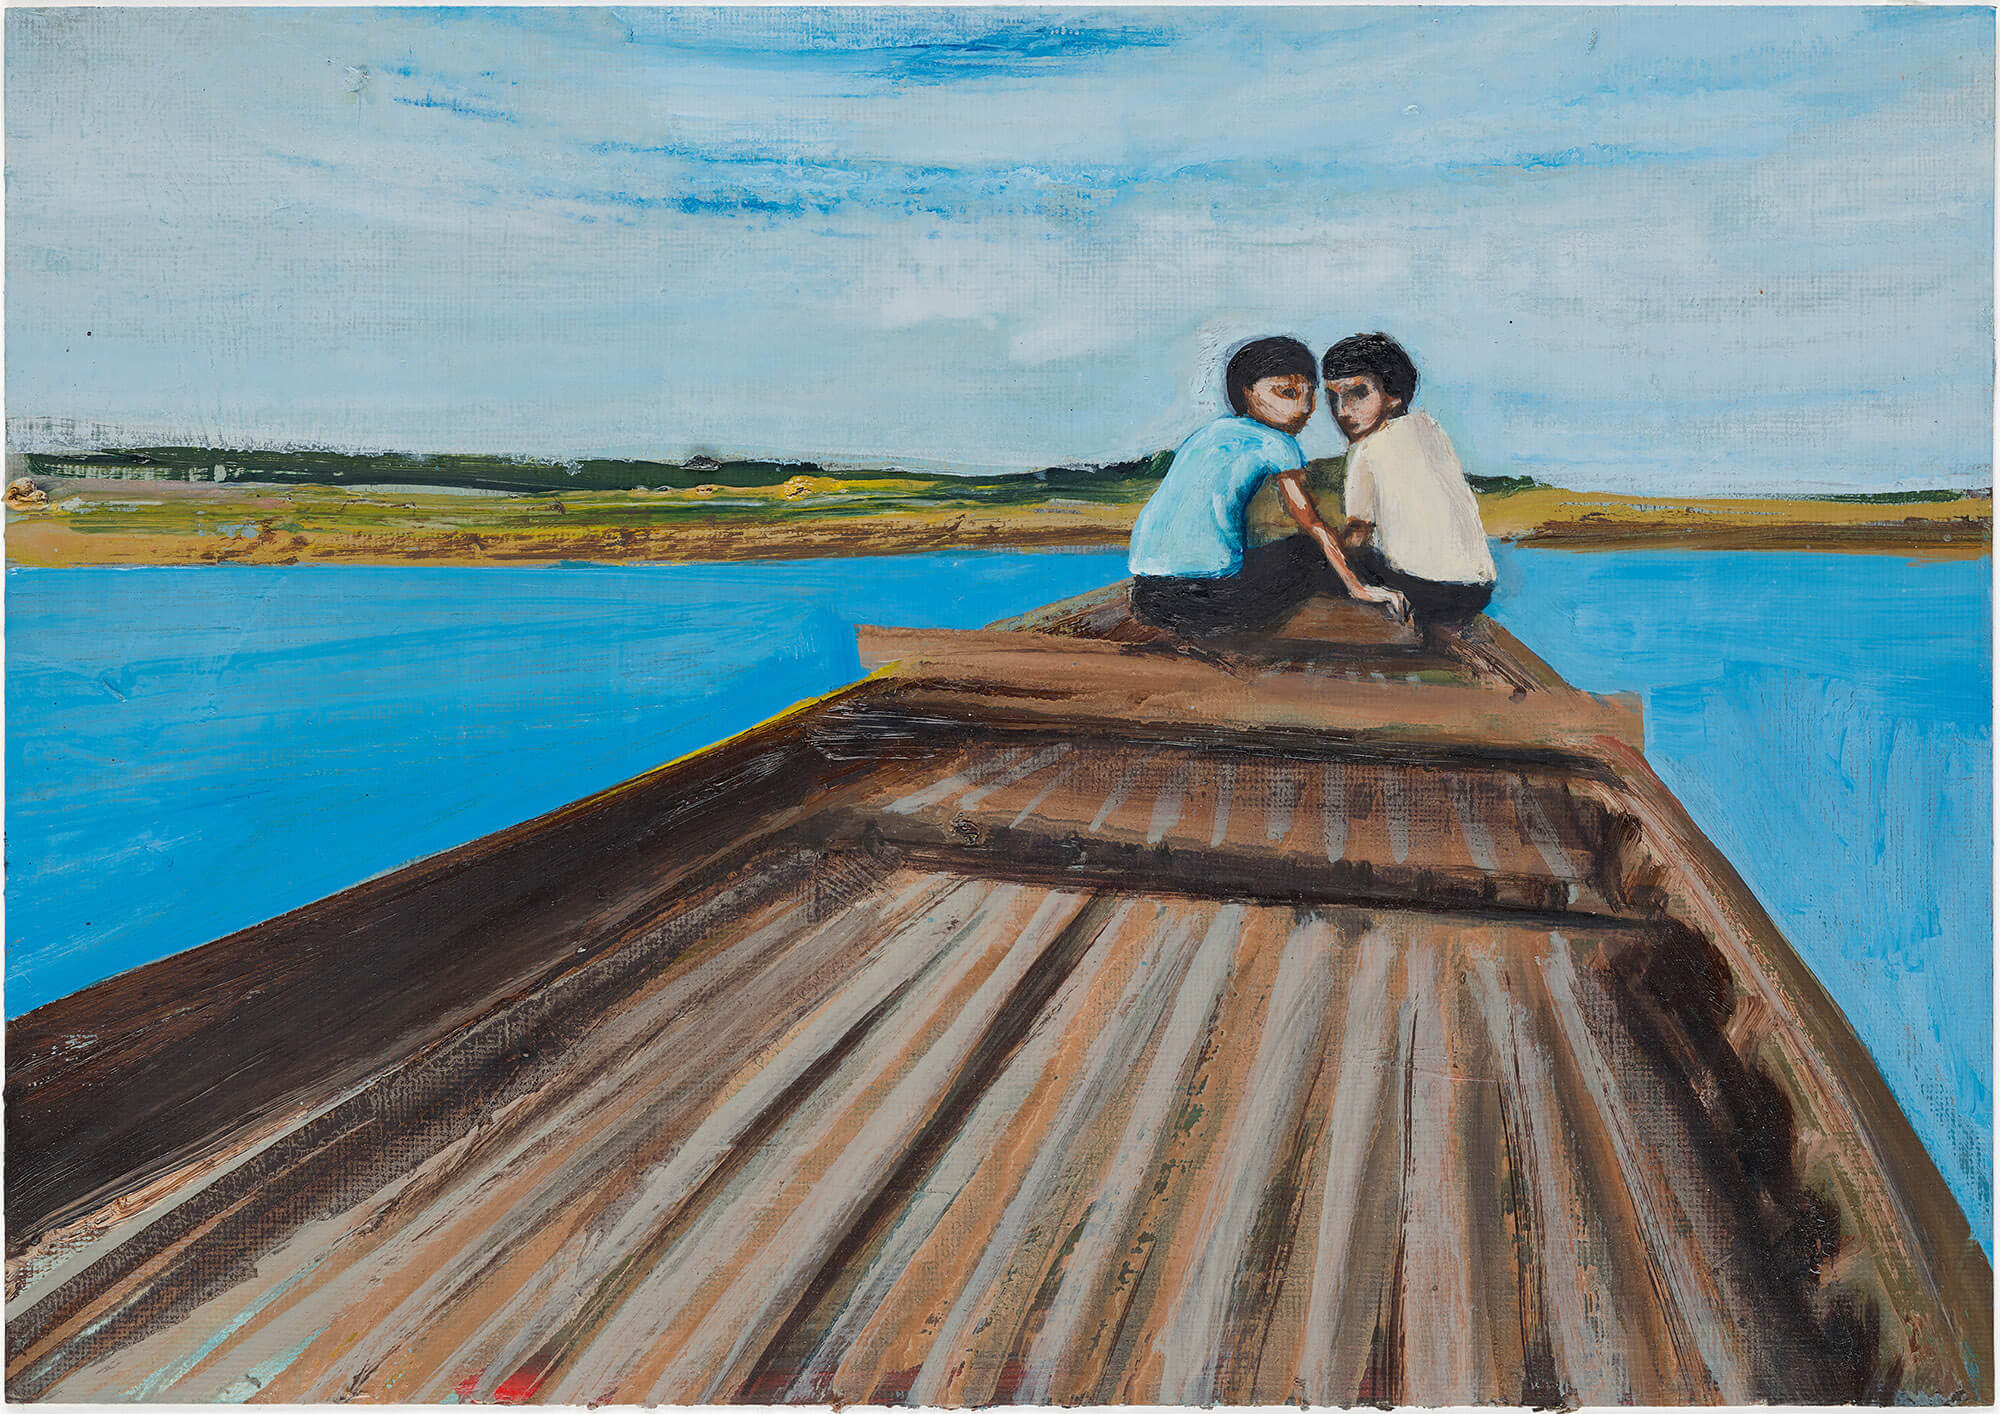 Matthew Krishanu, Two Boys on a Boat, 2018  Oil on paper 21 x 30cm Courtesy of the artist